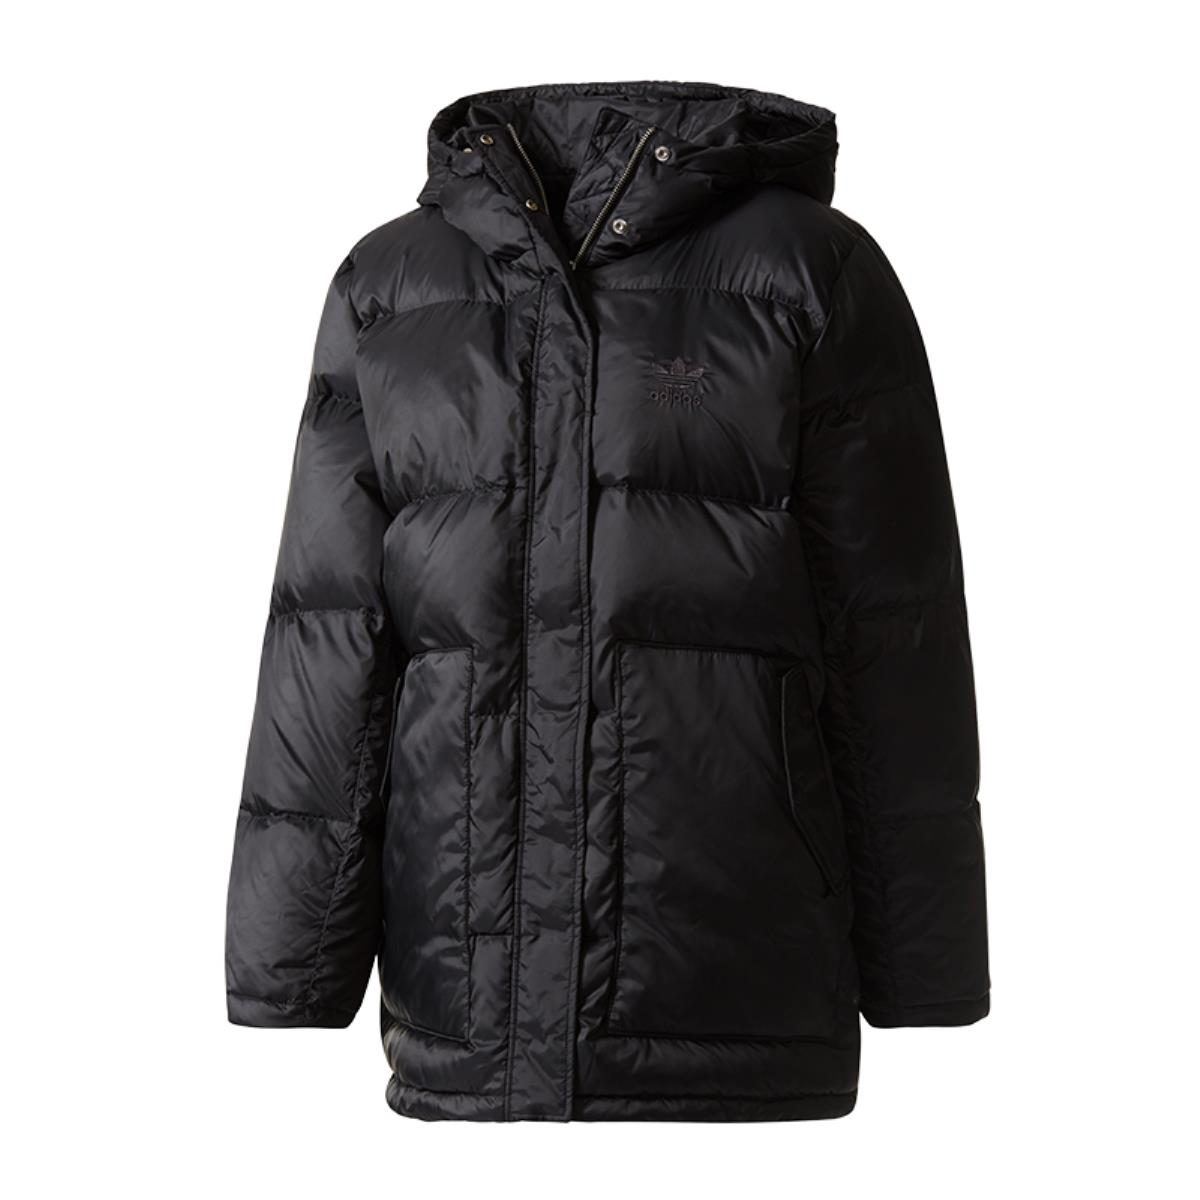 Adidas Mid Down Jacket Bs2184 Pmc Sports Wholesale